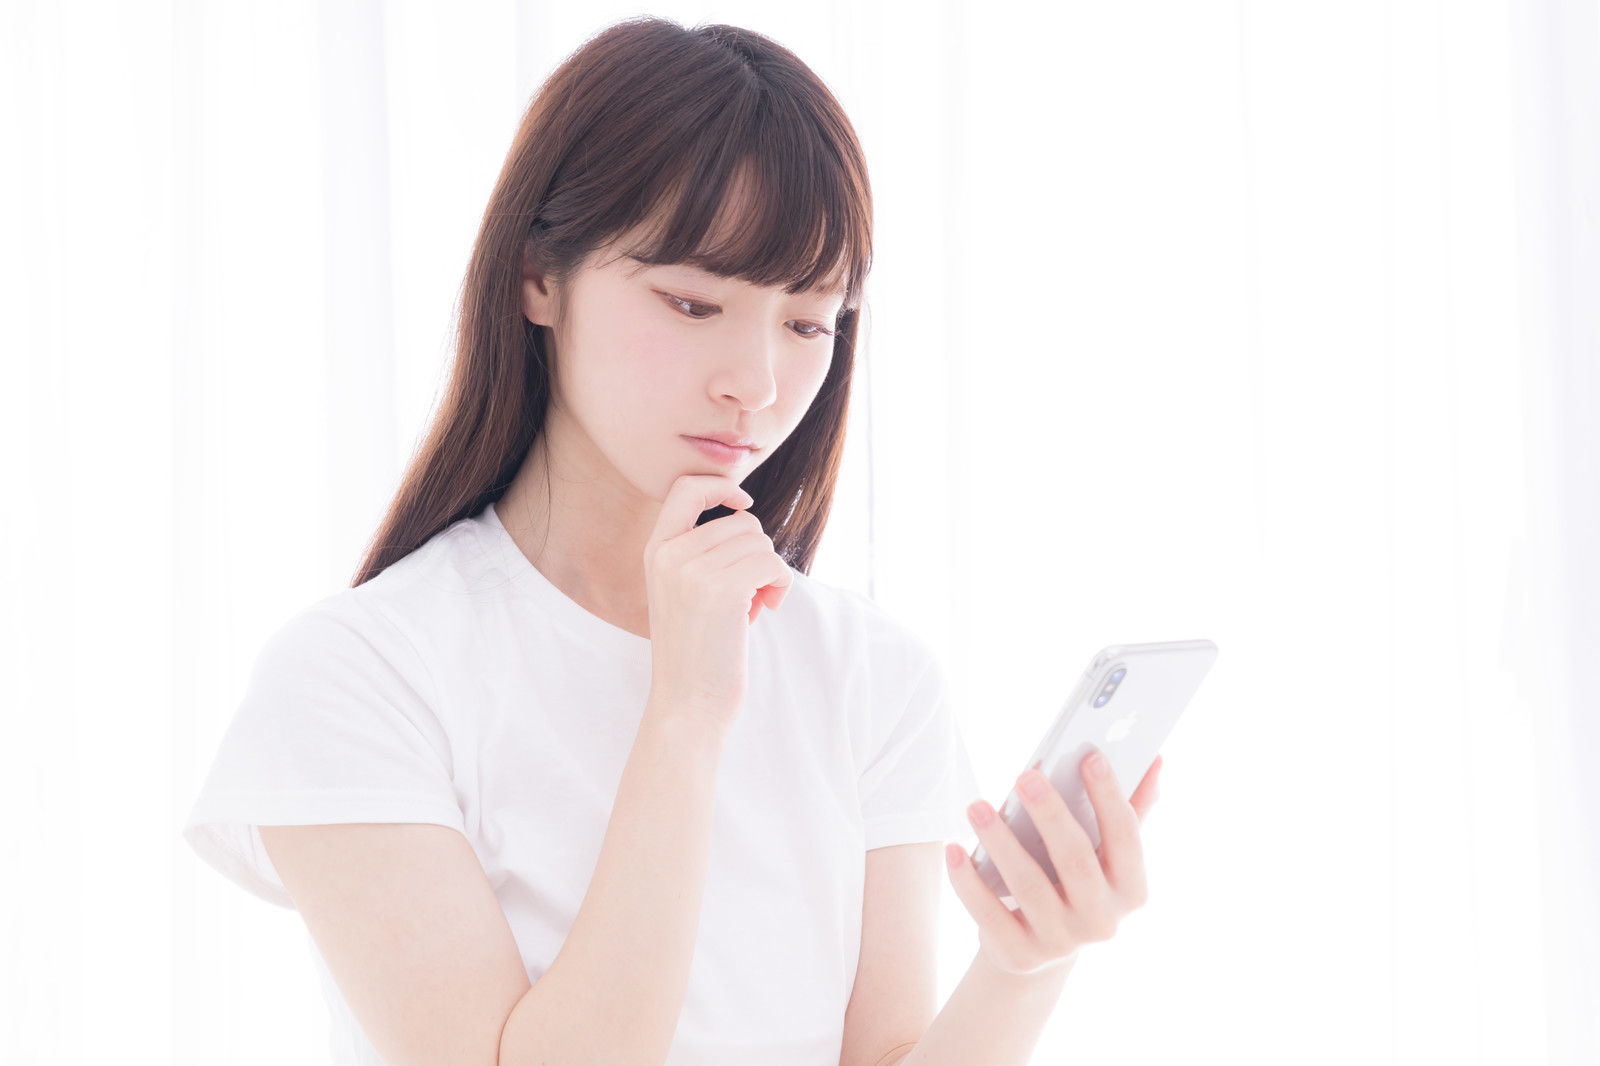 CLASとSubsclifeの仕組みをスマホで調べる女性